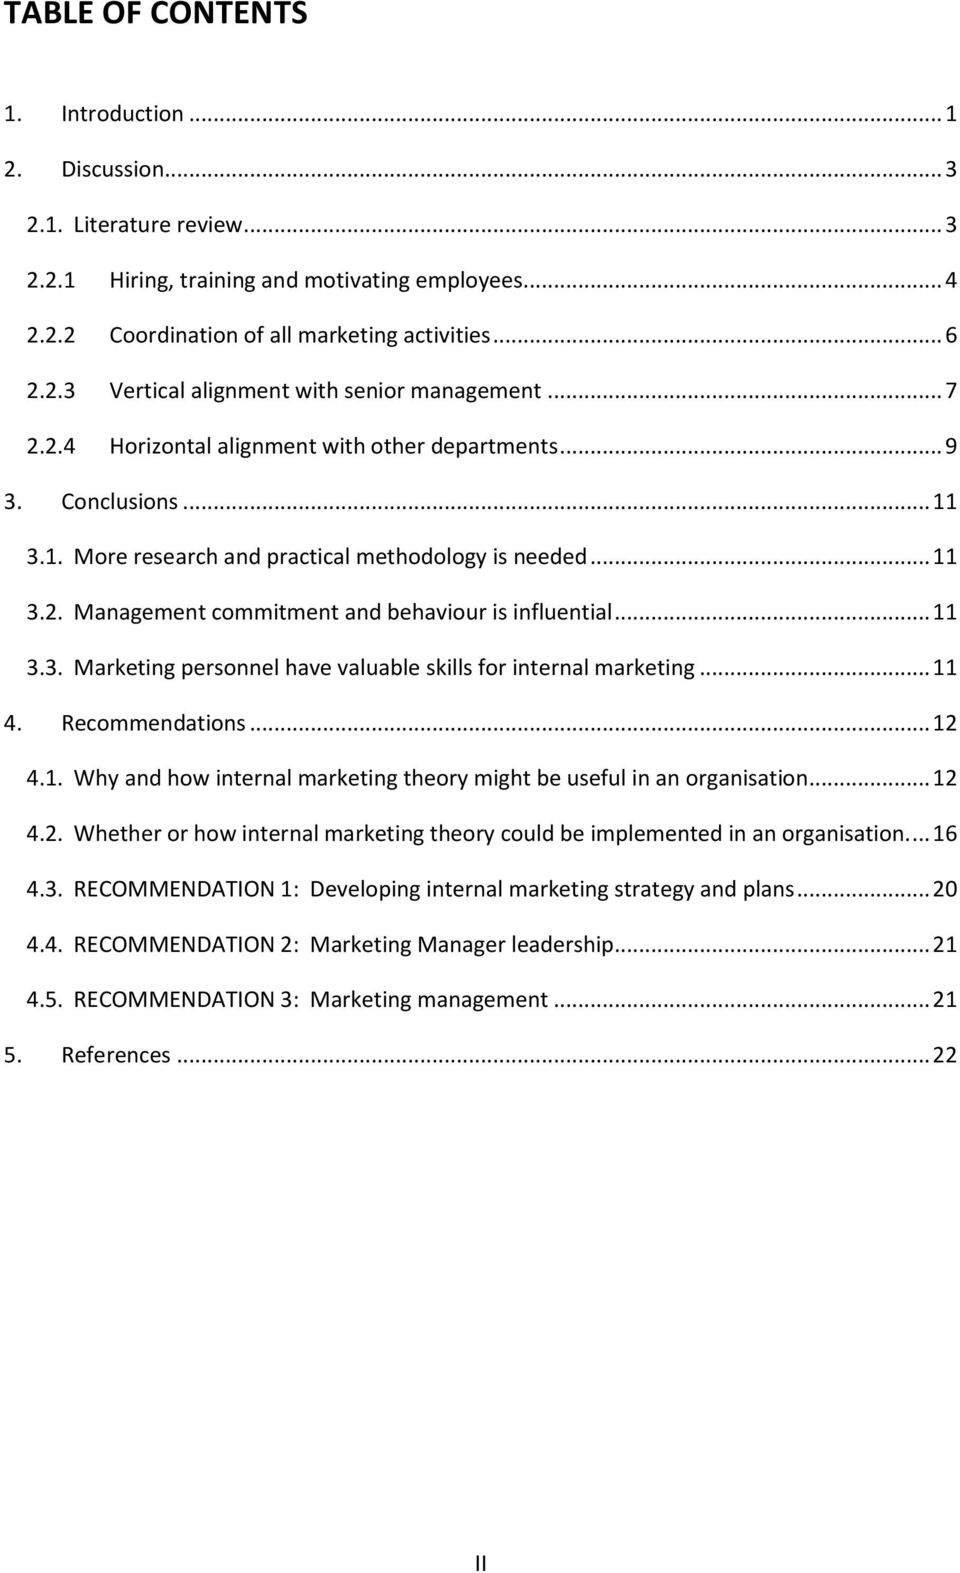 .. 11 3.3. Marketing personnel have valuable skills for internal marketing... 11 4. Recommendations... 12 4.1. Why and how internal marketing theory might be useful in an organisation... 12 4.2. Whether or how internal marketing theory could be implemented in an organisation.